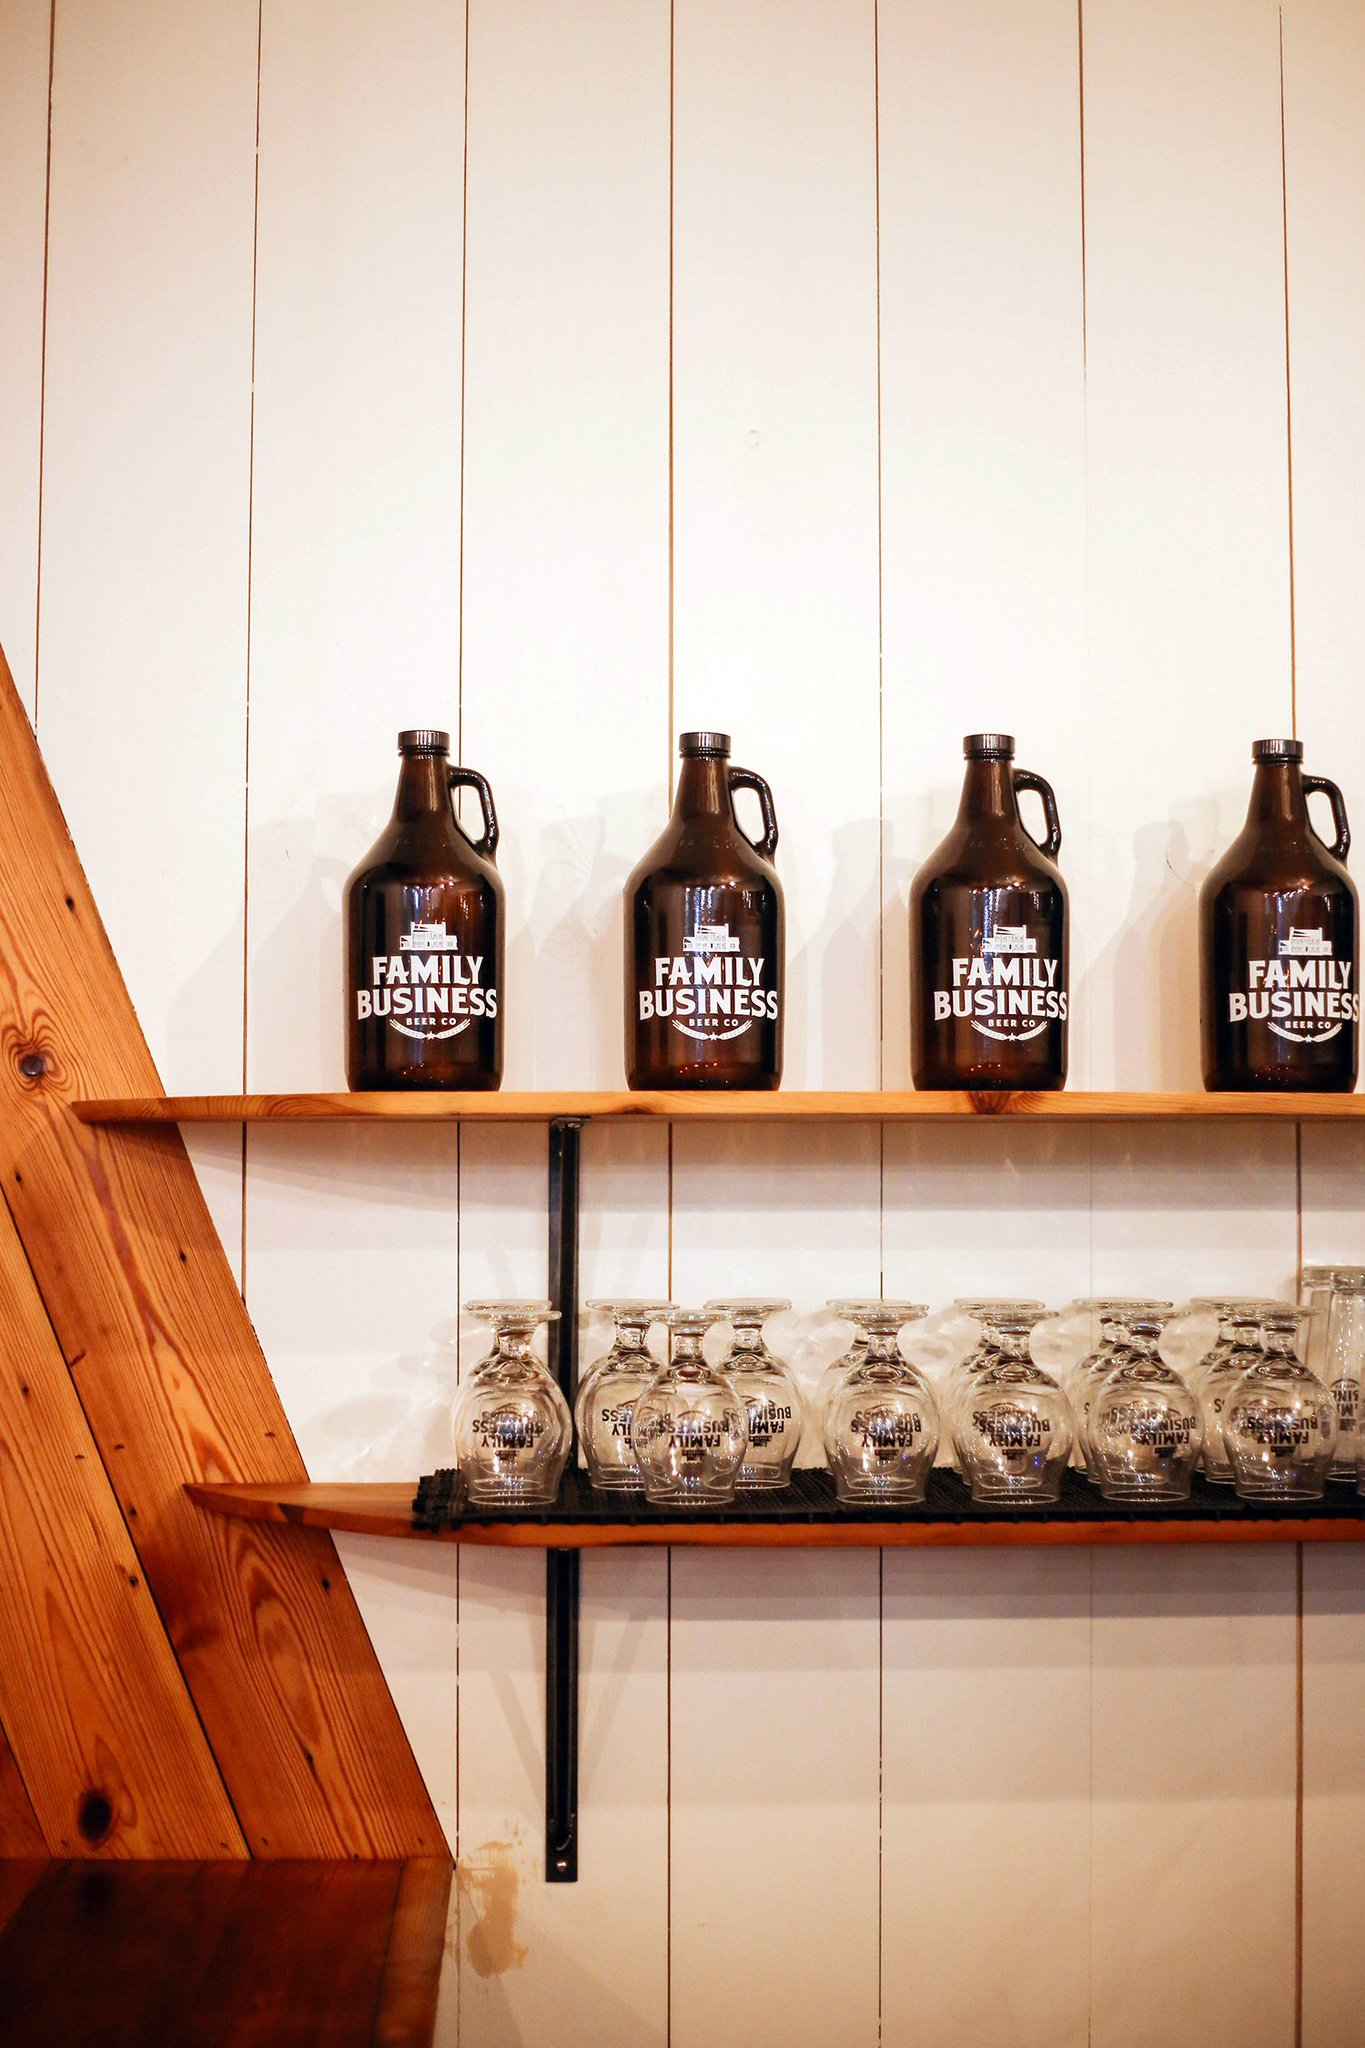 glasses and growlers on display at the Family Business Beer Company